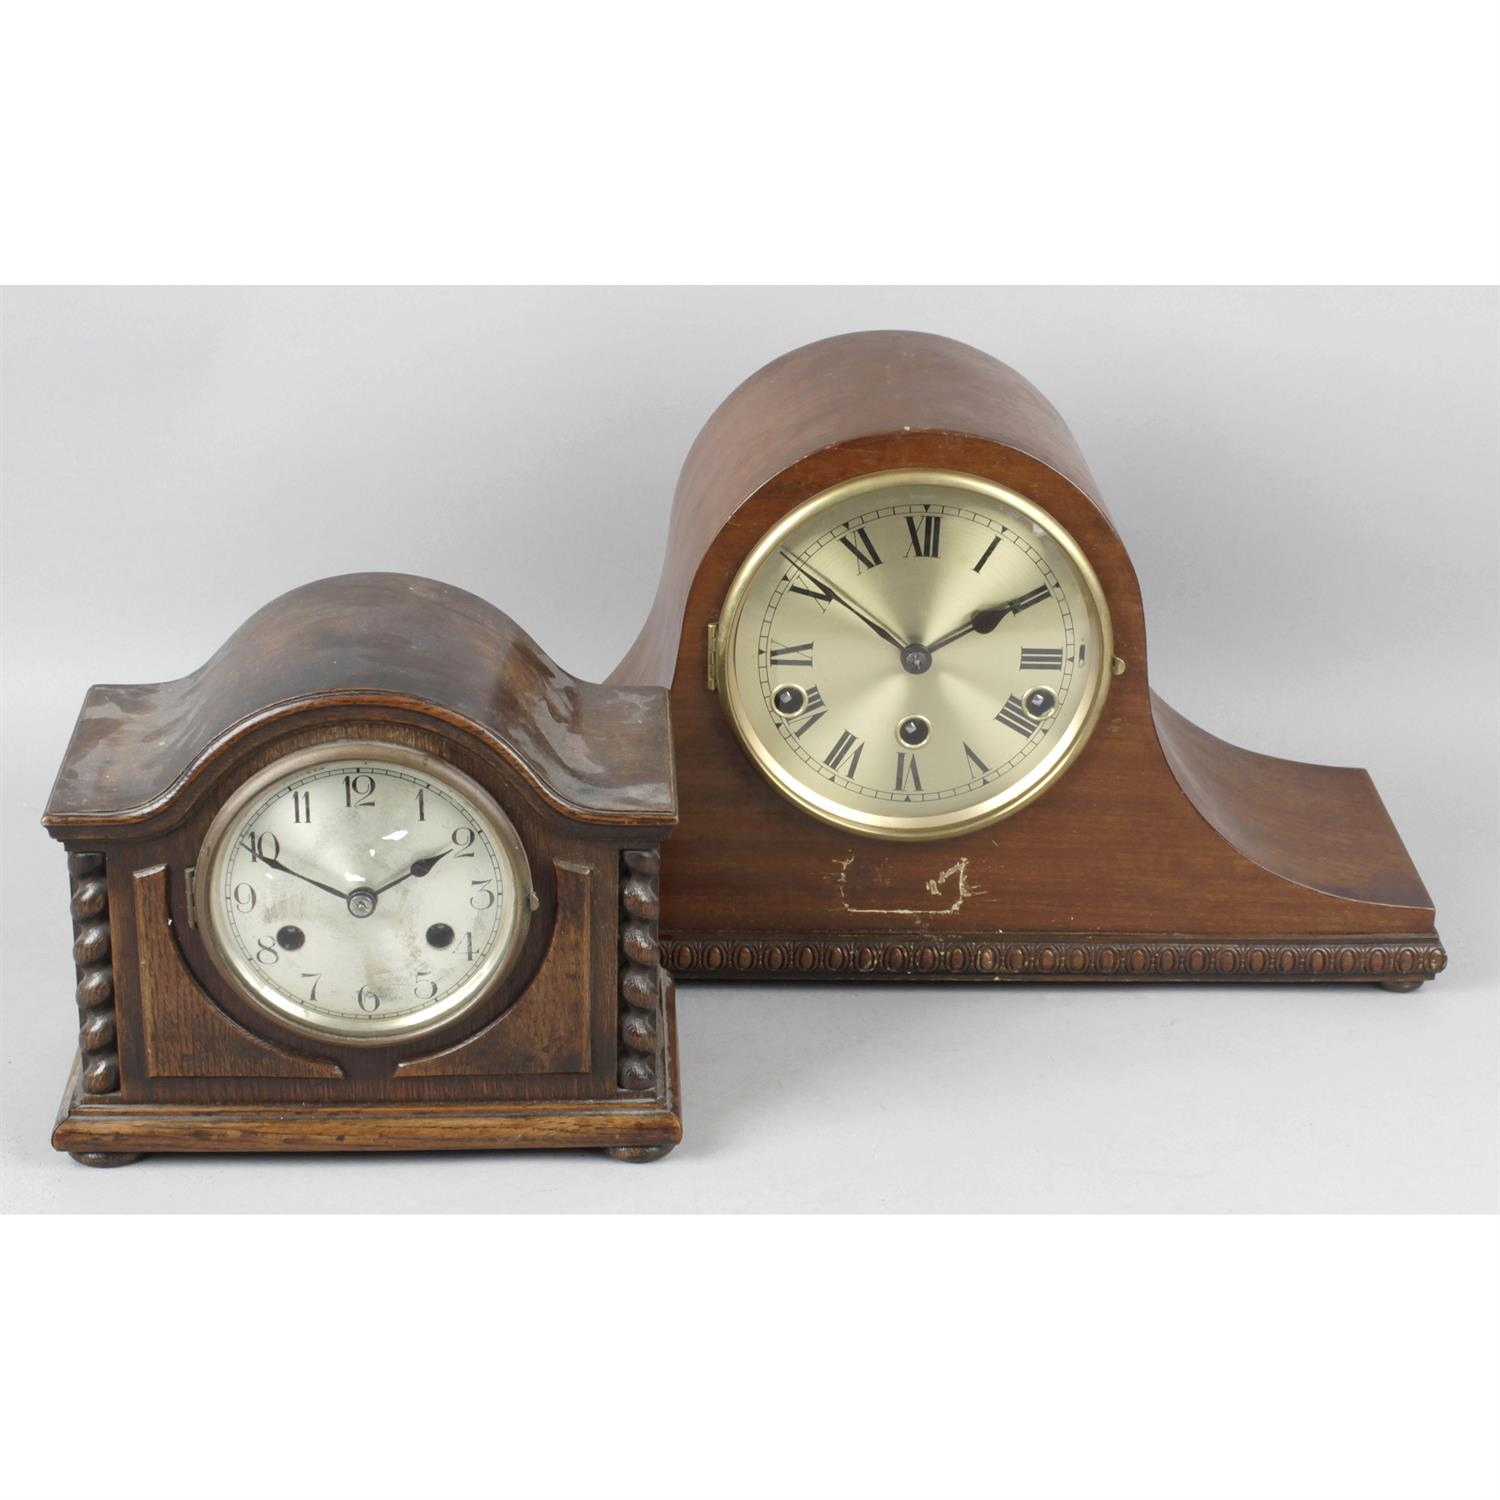 A reproduction wall hanging lantern style clock together with two mahogany cased mantel clocks.